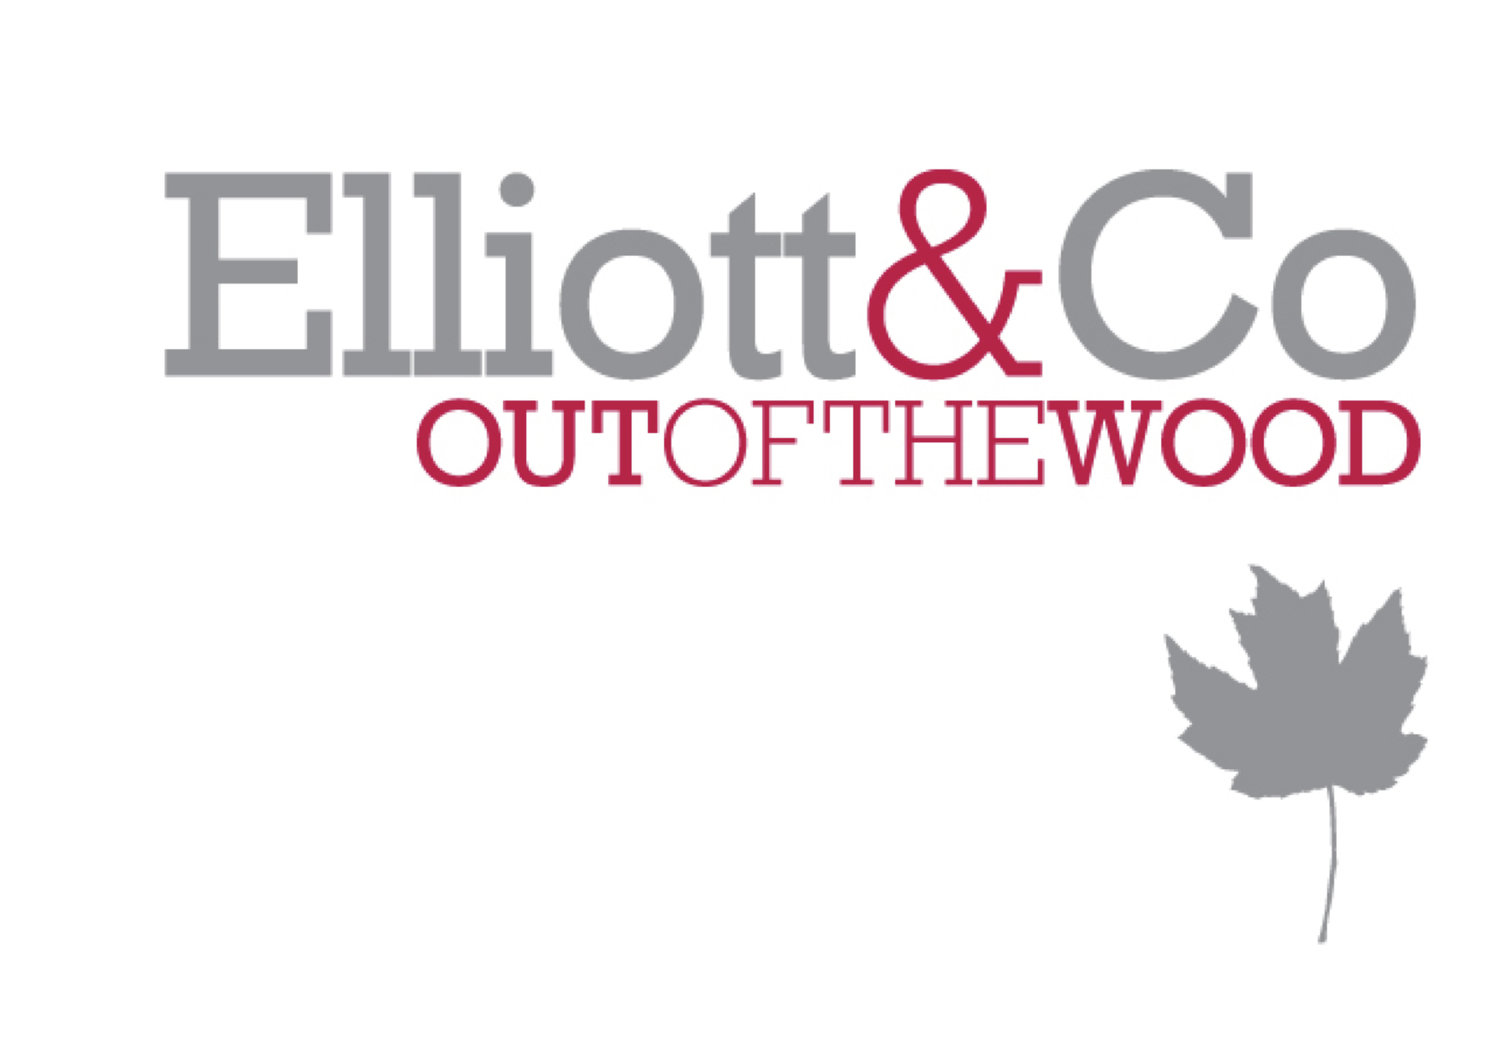 ELLIOTT & cO